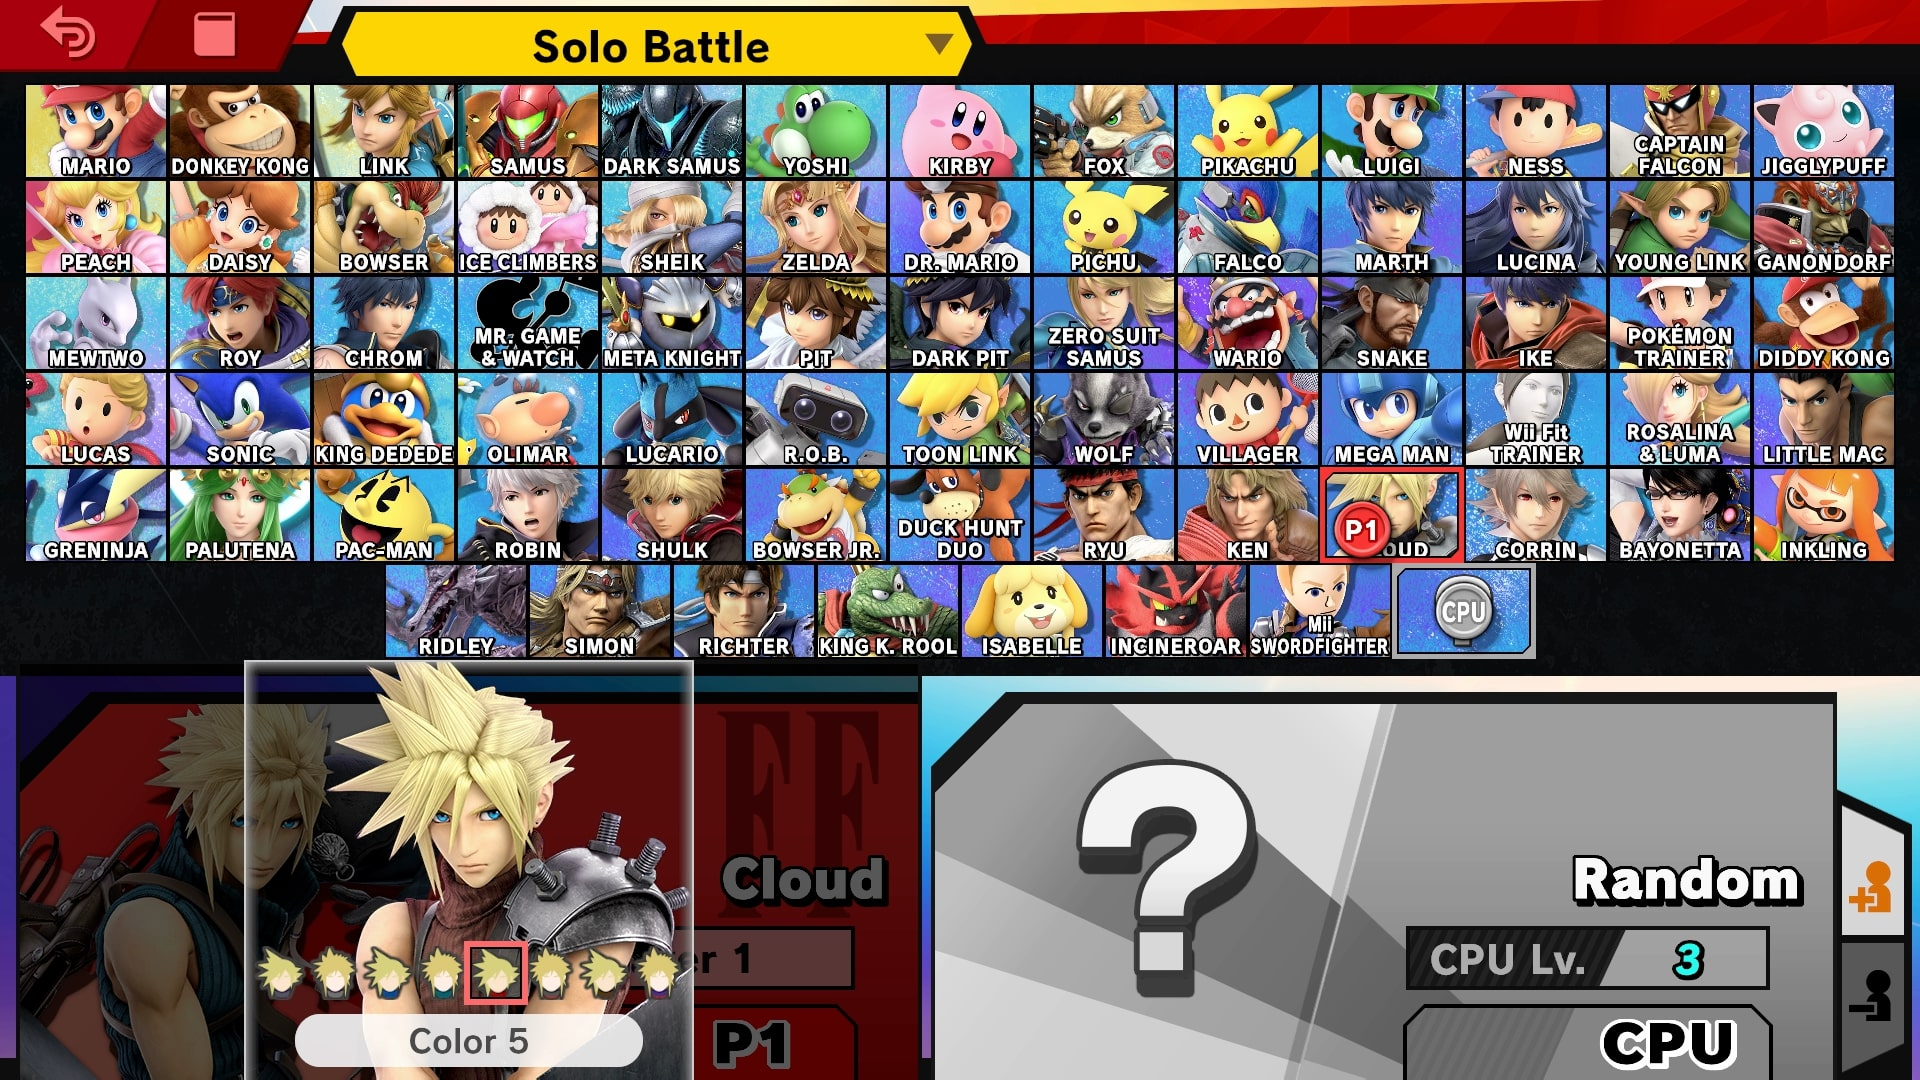 Cloud Super Smash Bros Ultimate Guide - Unlock, Moves, Changes